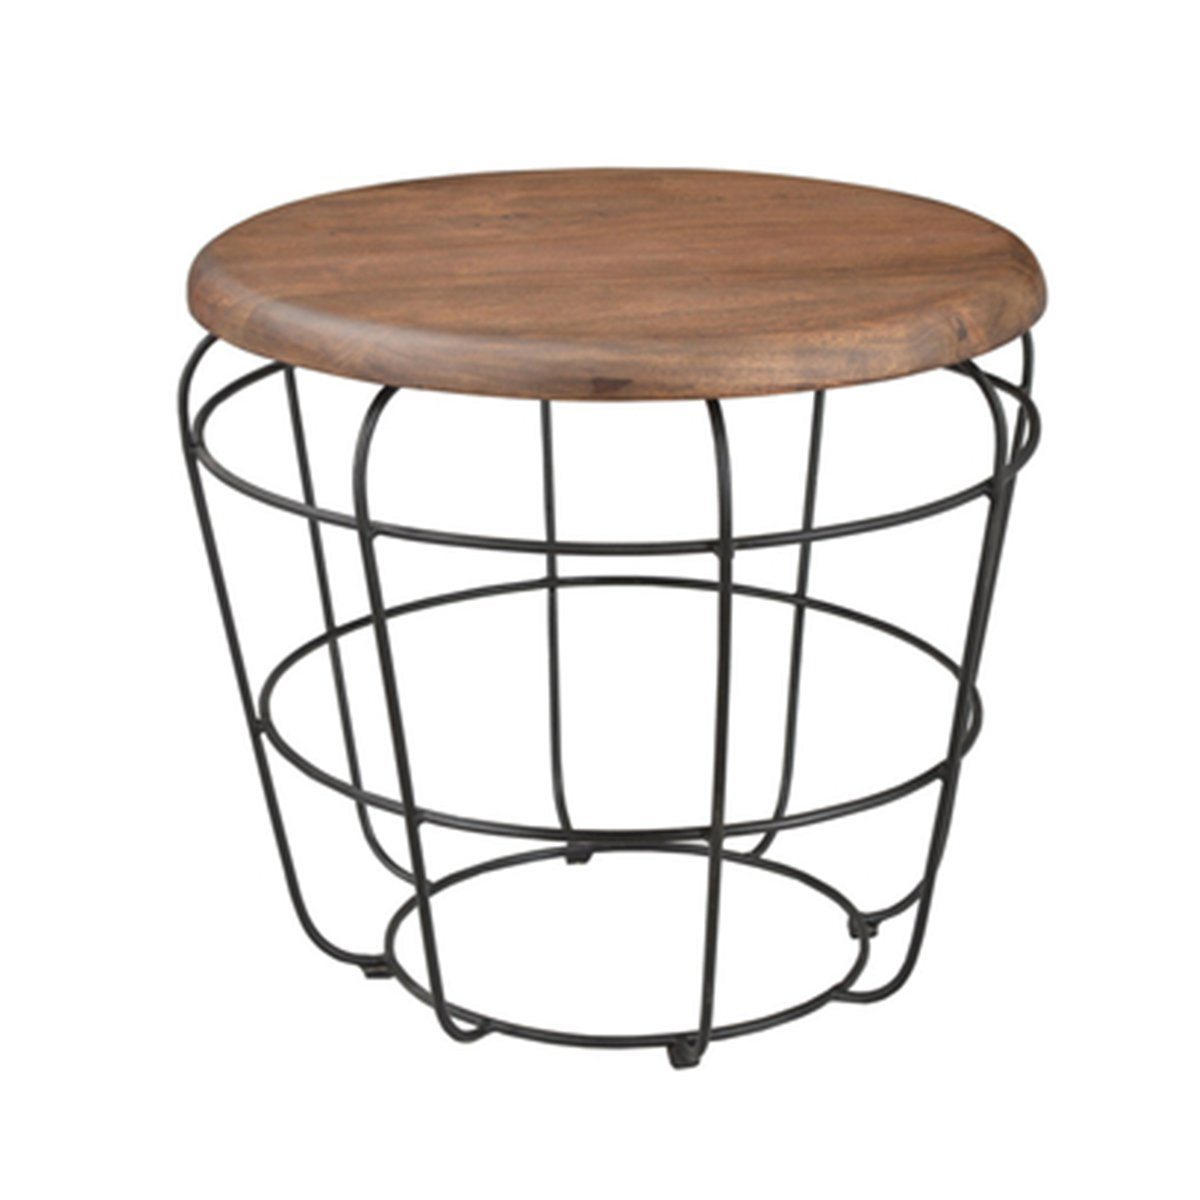 ORB ACCENT TABLE - Showhome Furniture